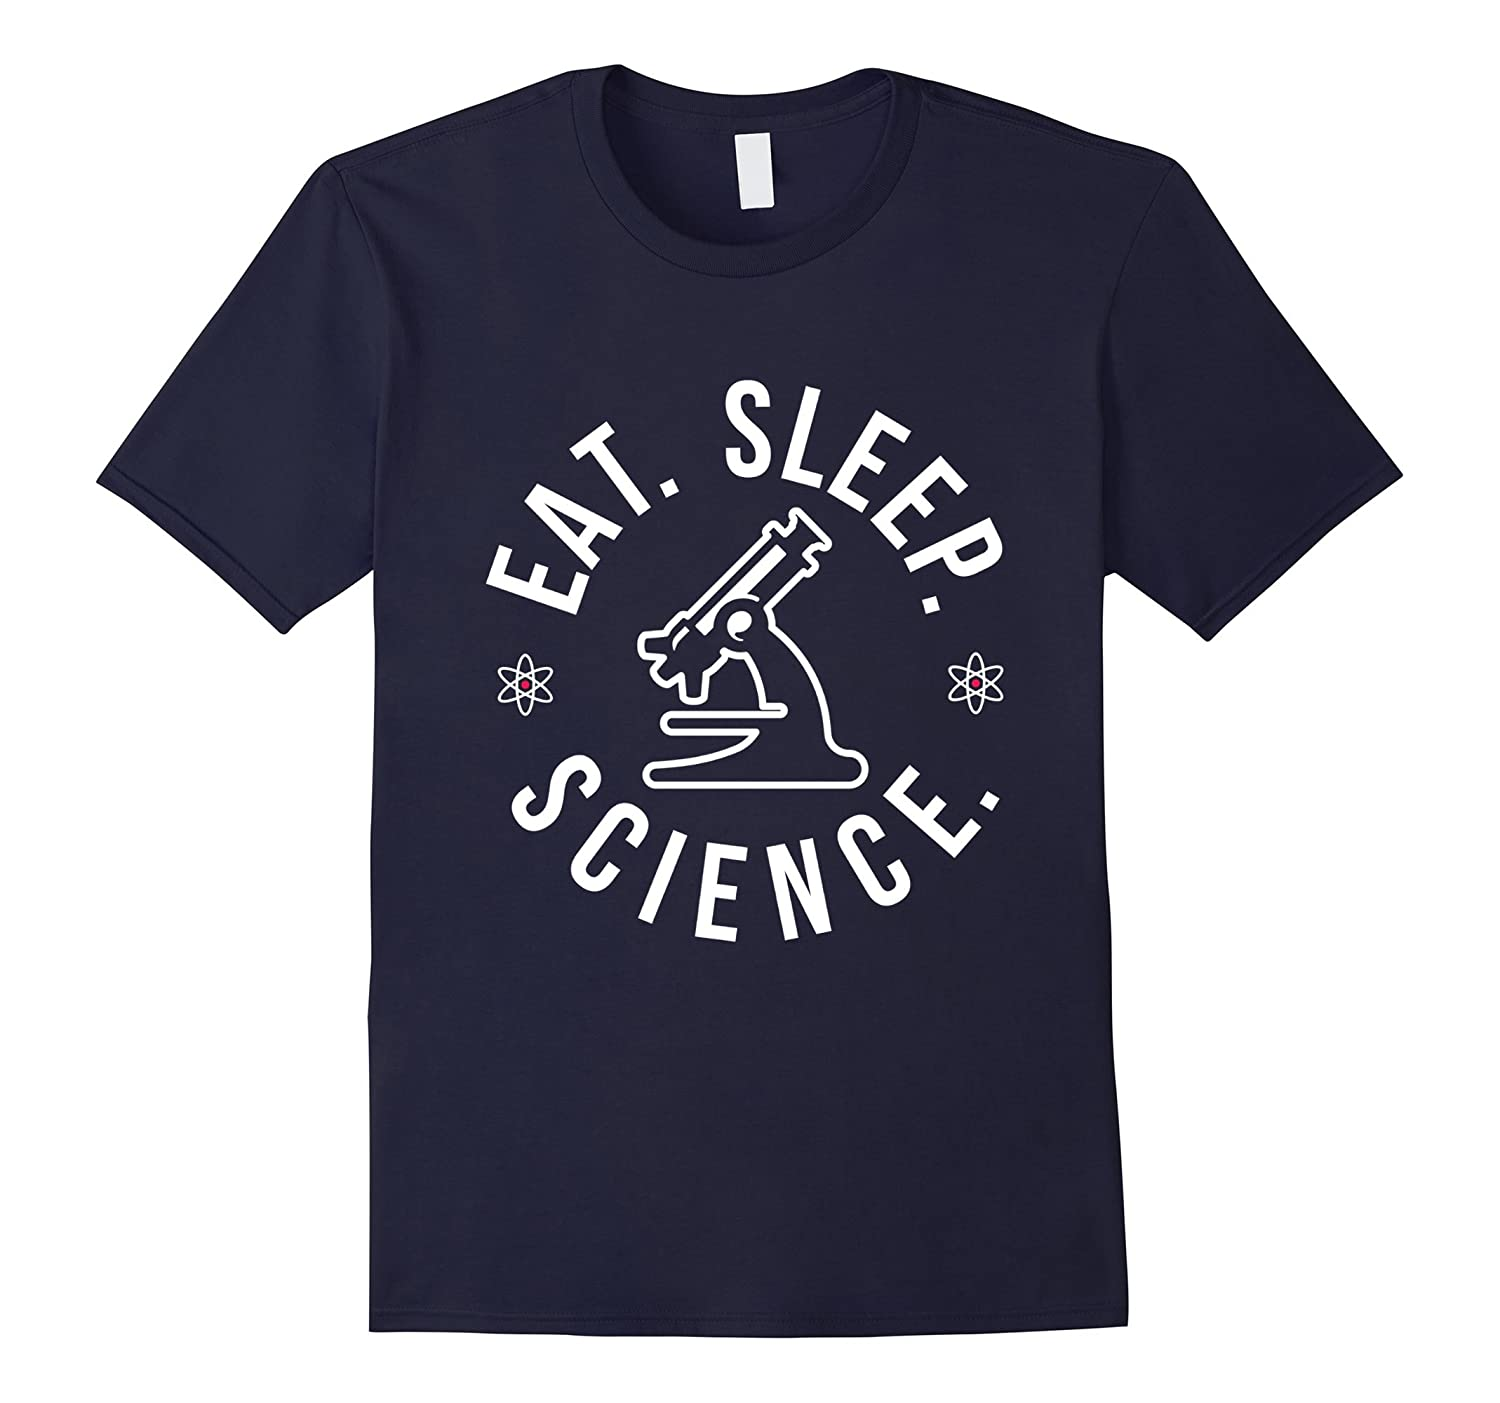 Funny Eat Sleep Science Tshirt - Nerdy Microscope Scientist-FL